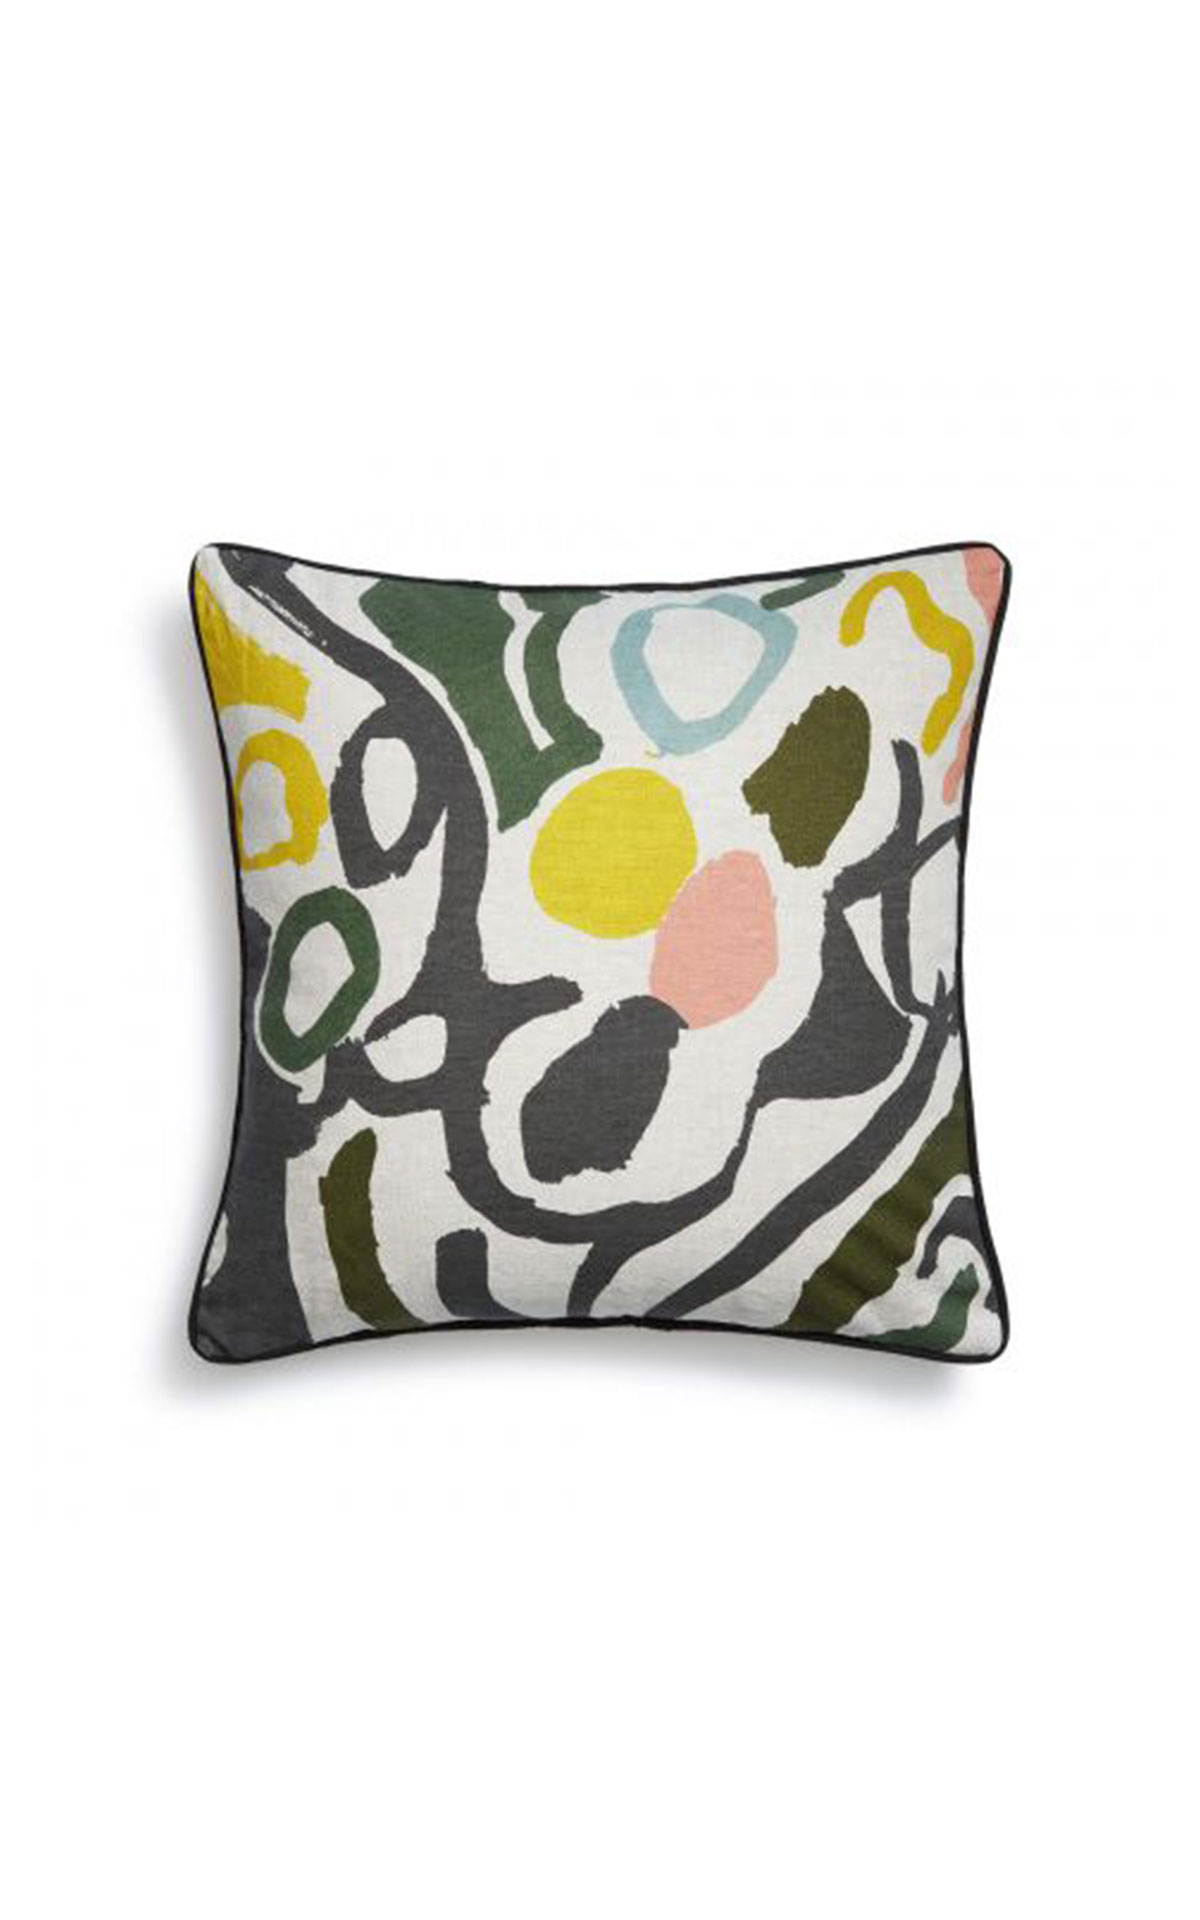 Soho Home Laura Slater x Soho Home cushion from Bicester Village